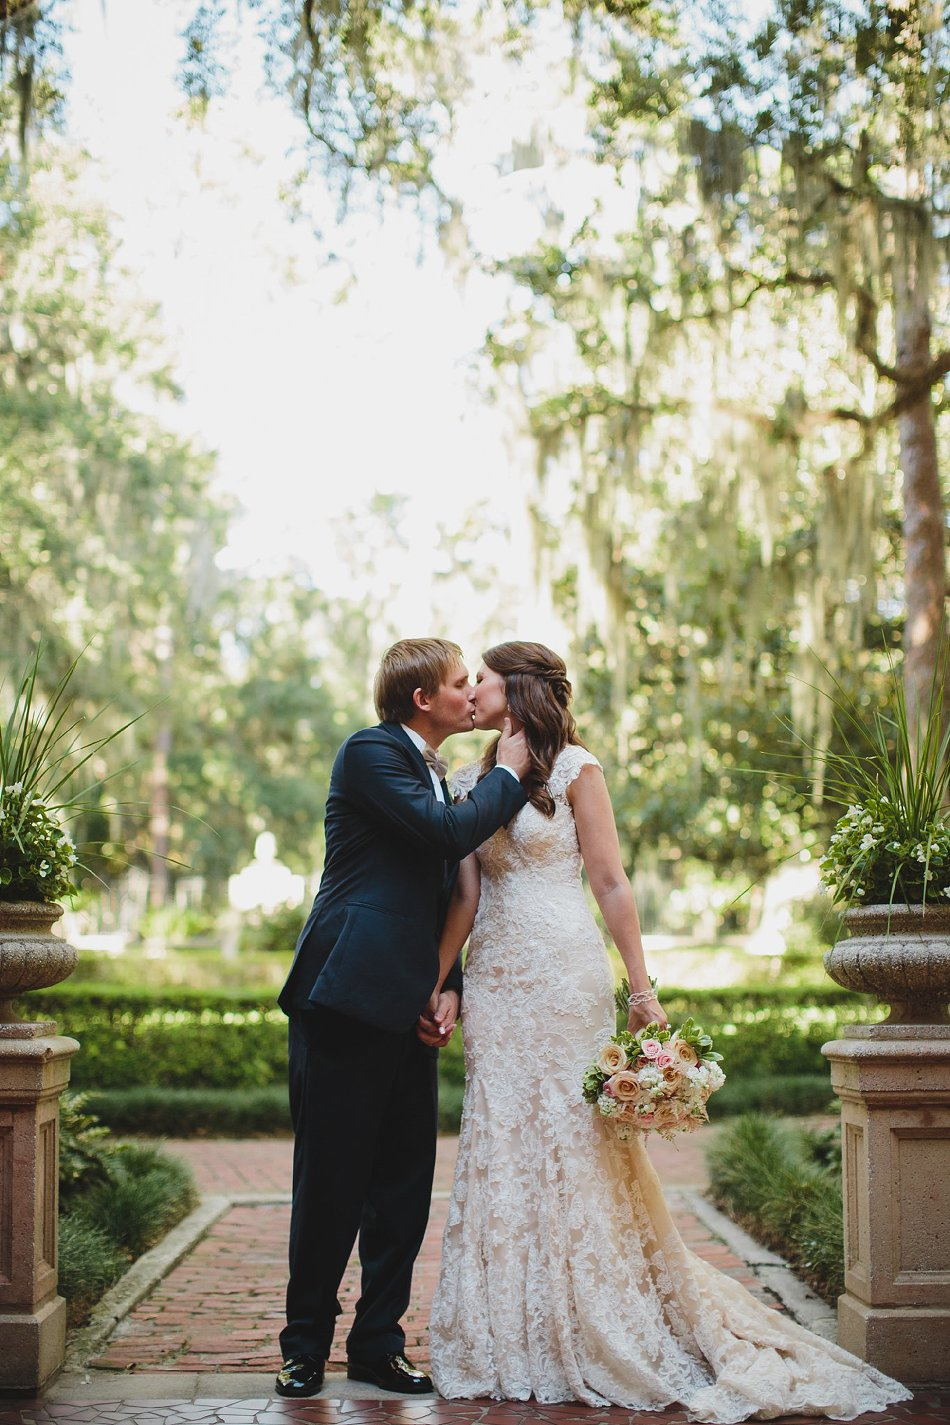 a fantasy in flowers,destination wedding photographer,epping forest,epping forest yacht club,florida wedding photographer,jacksonville wedding photographer,outdoor ceremony,photographer,st. augustine,st. augustine photographer,stephanie w photography,wedding,